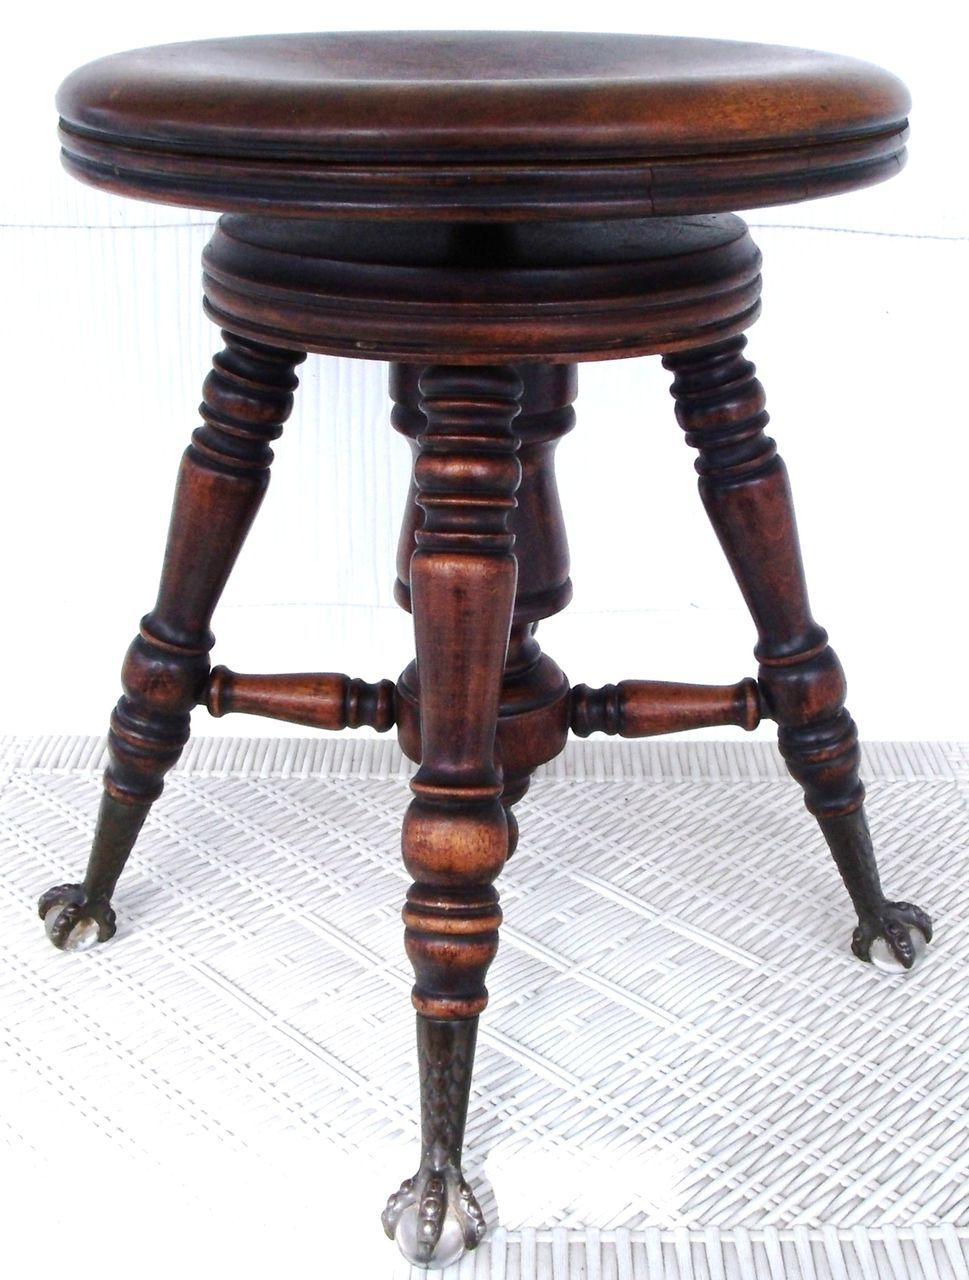 Phenomenal Antique Victorian Ball Claw Footed Swivel Piano Stool A Short Links Chair Design For Home Short Linksinfo